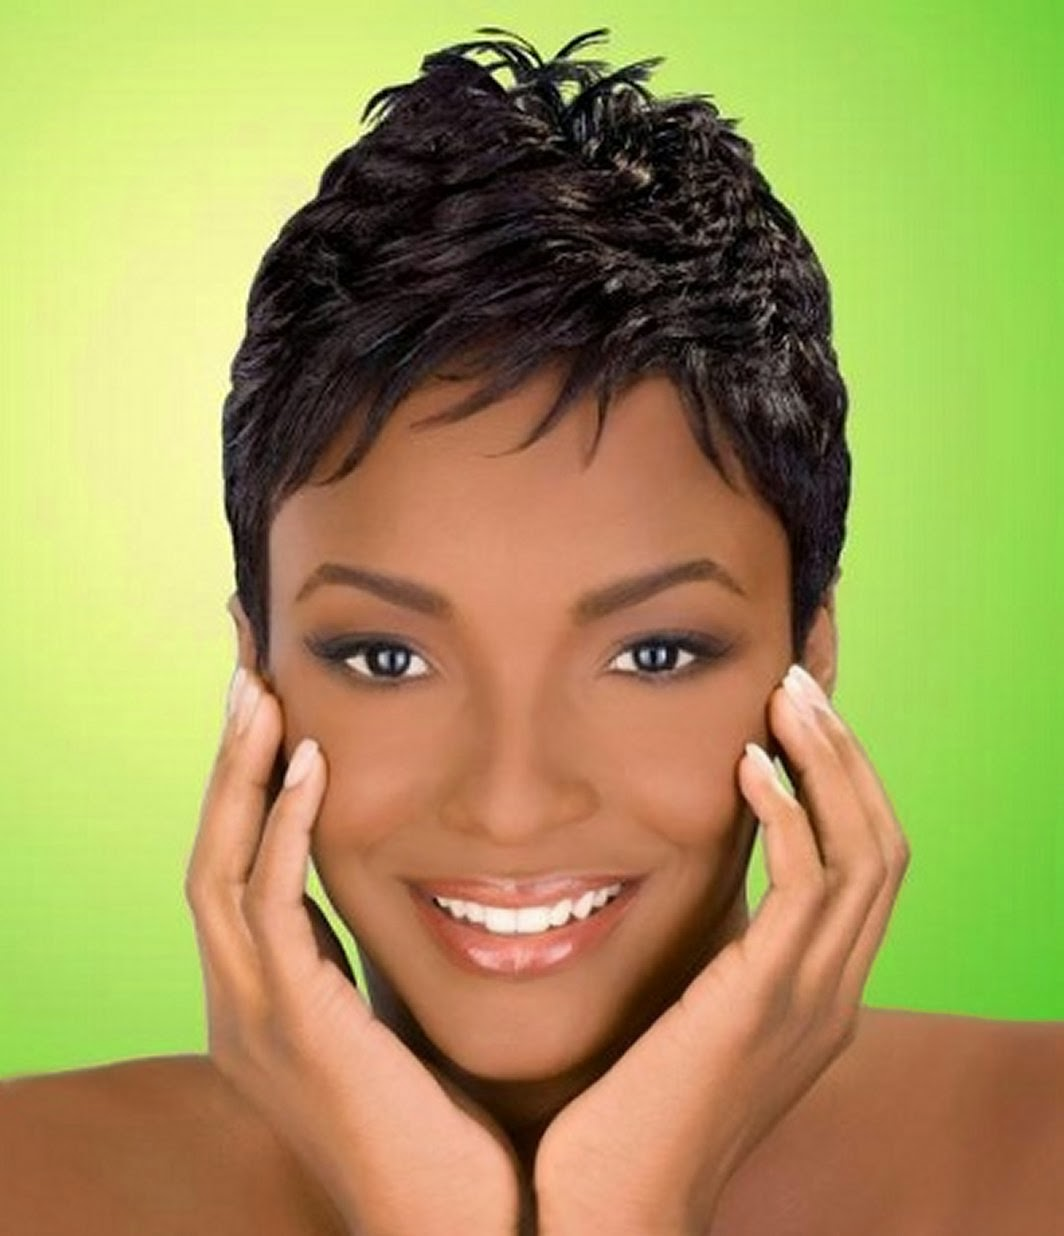 Pleasant Good Short Hairstyles For African American Women Short Hairstyles For Black Women Fulllsitofus